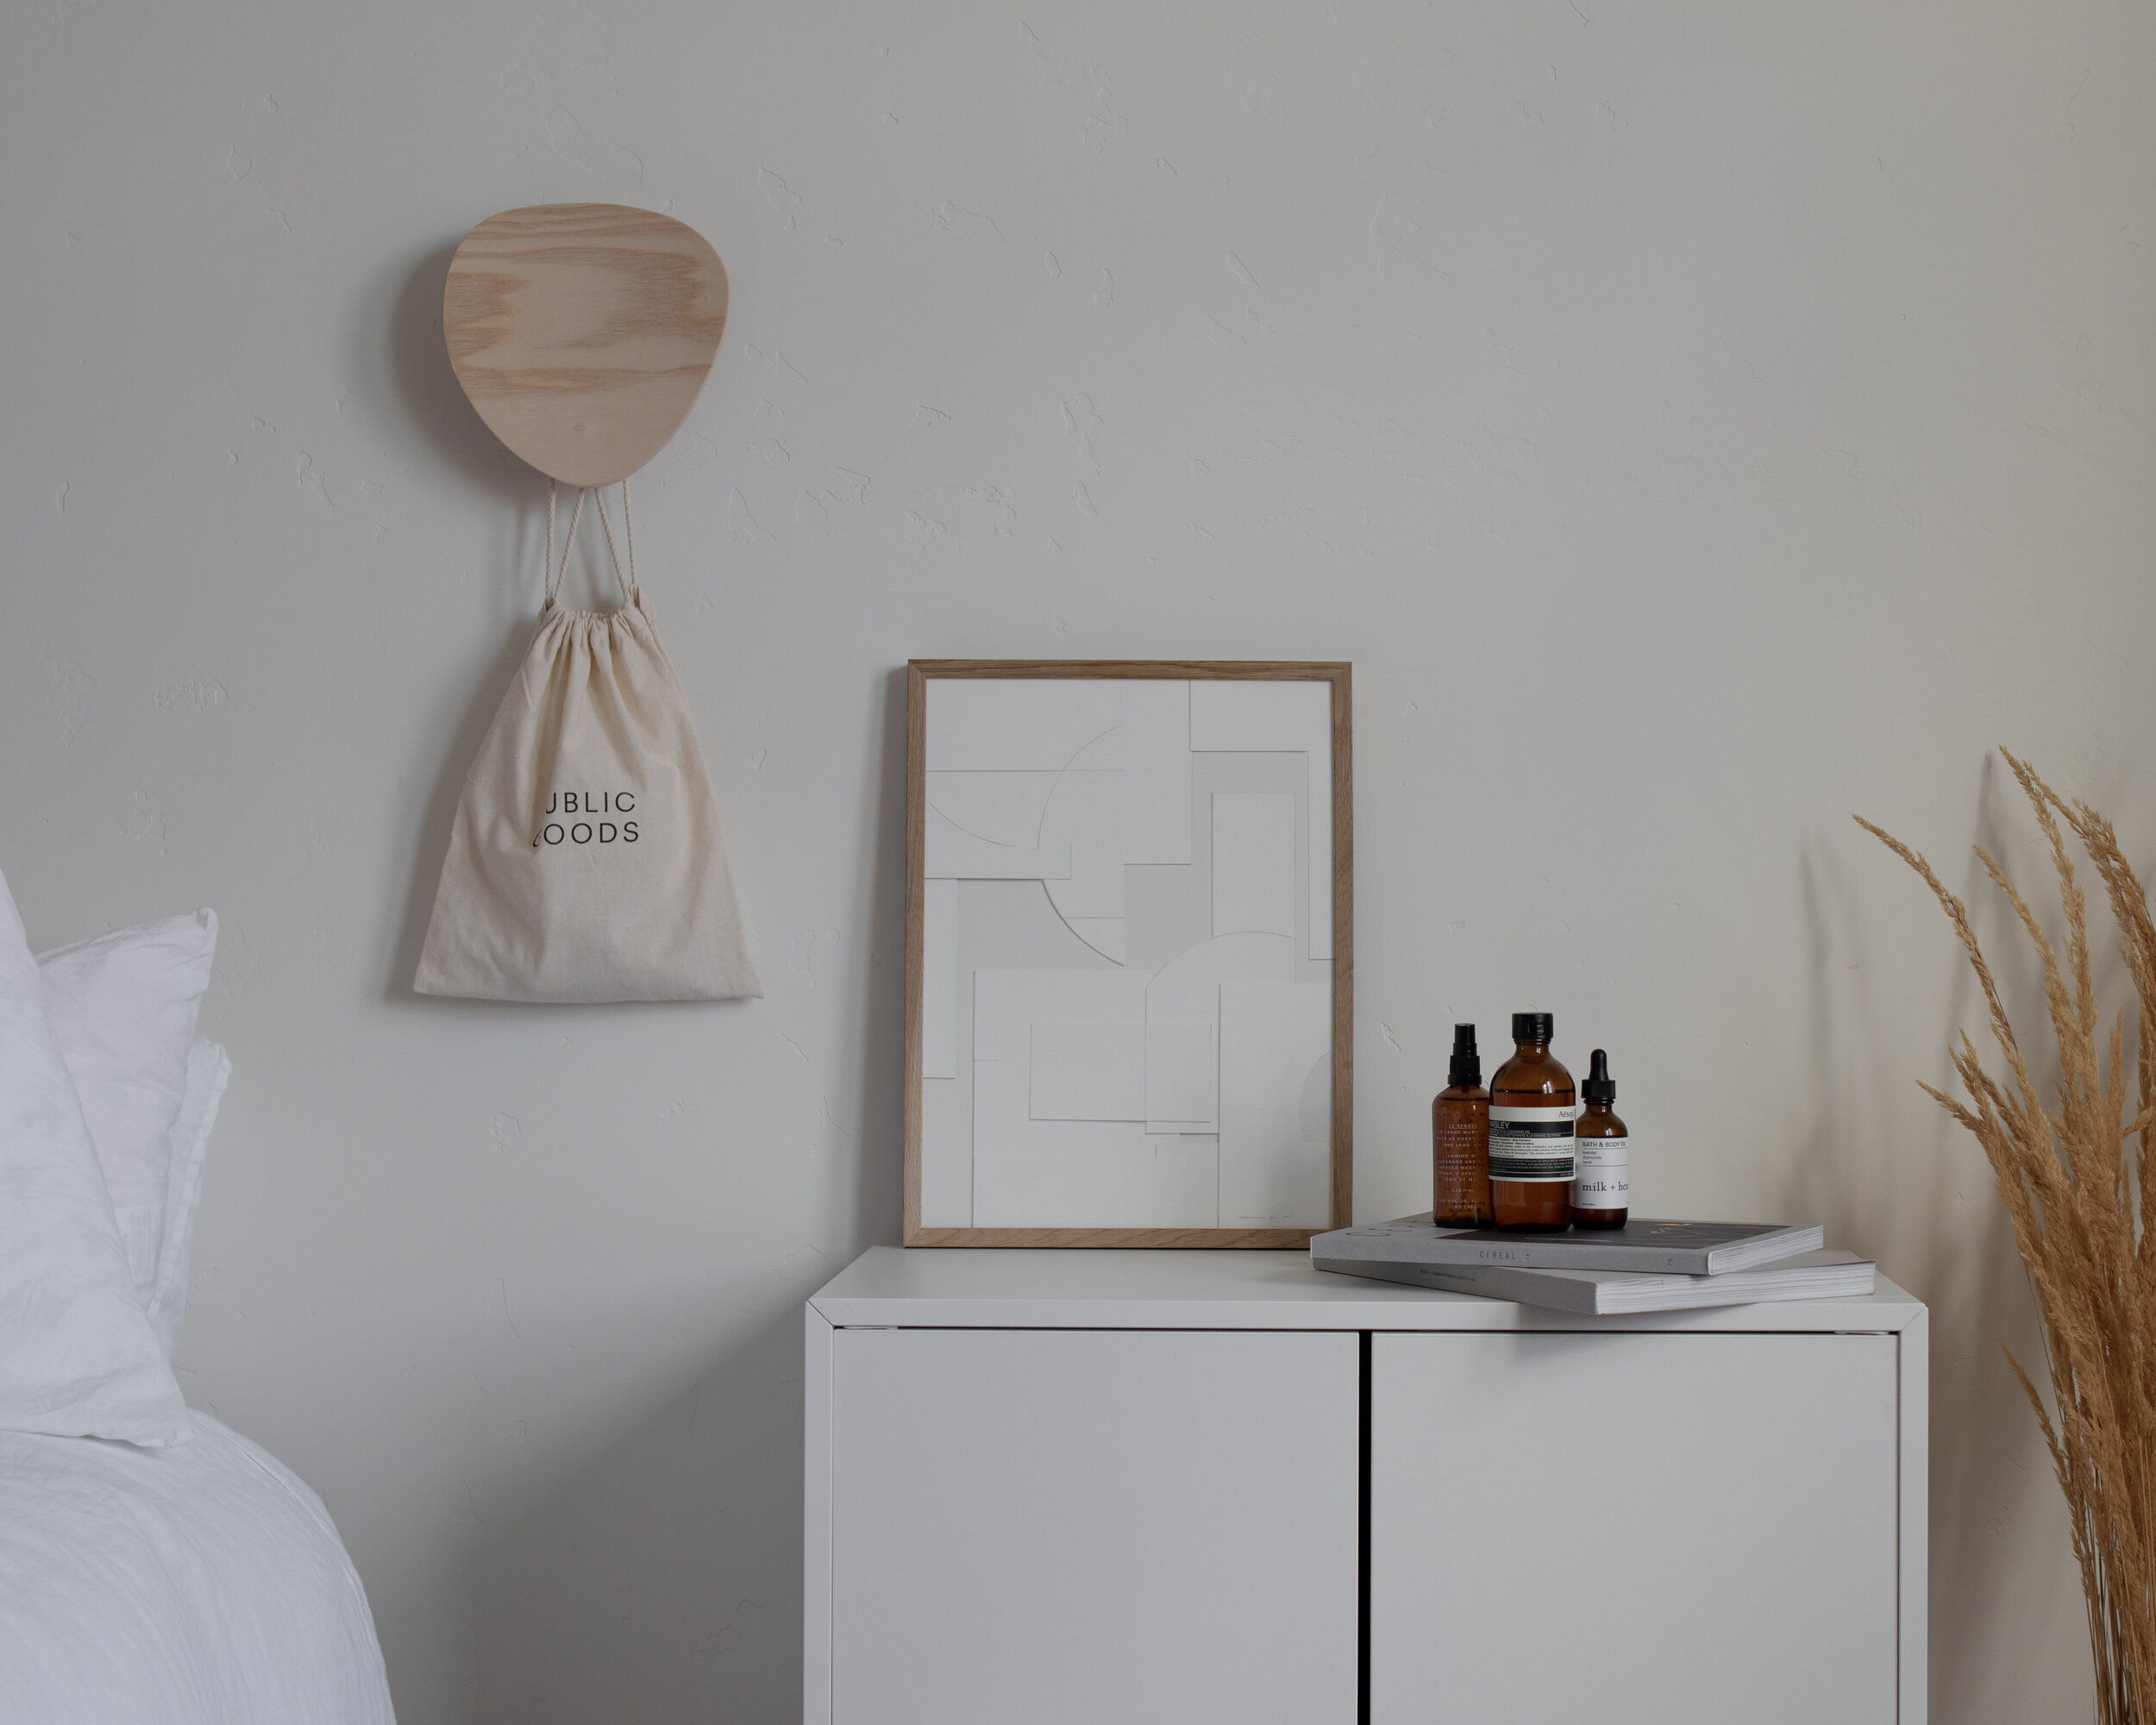 Kovac wall hooks in a nordic bedroom space